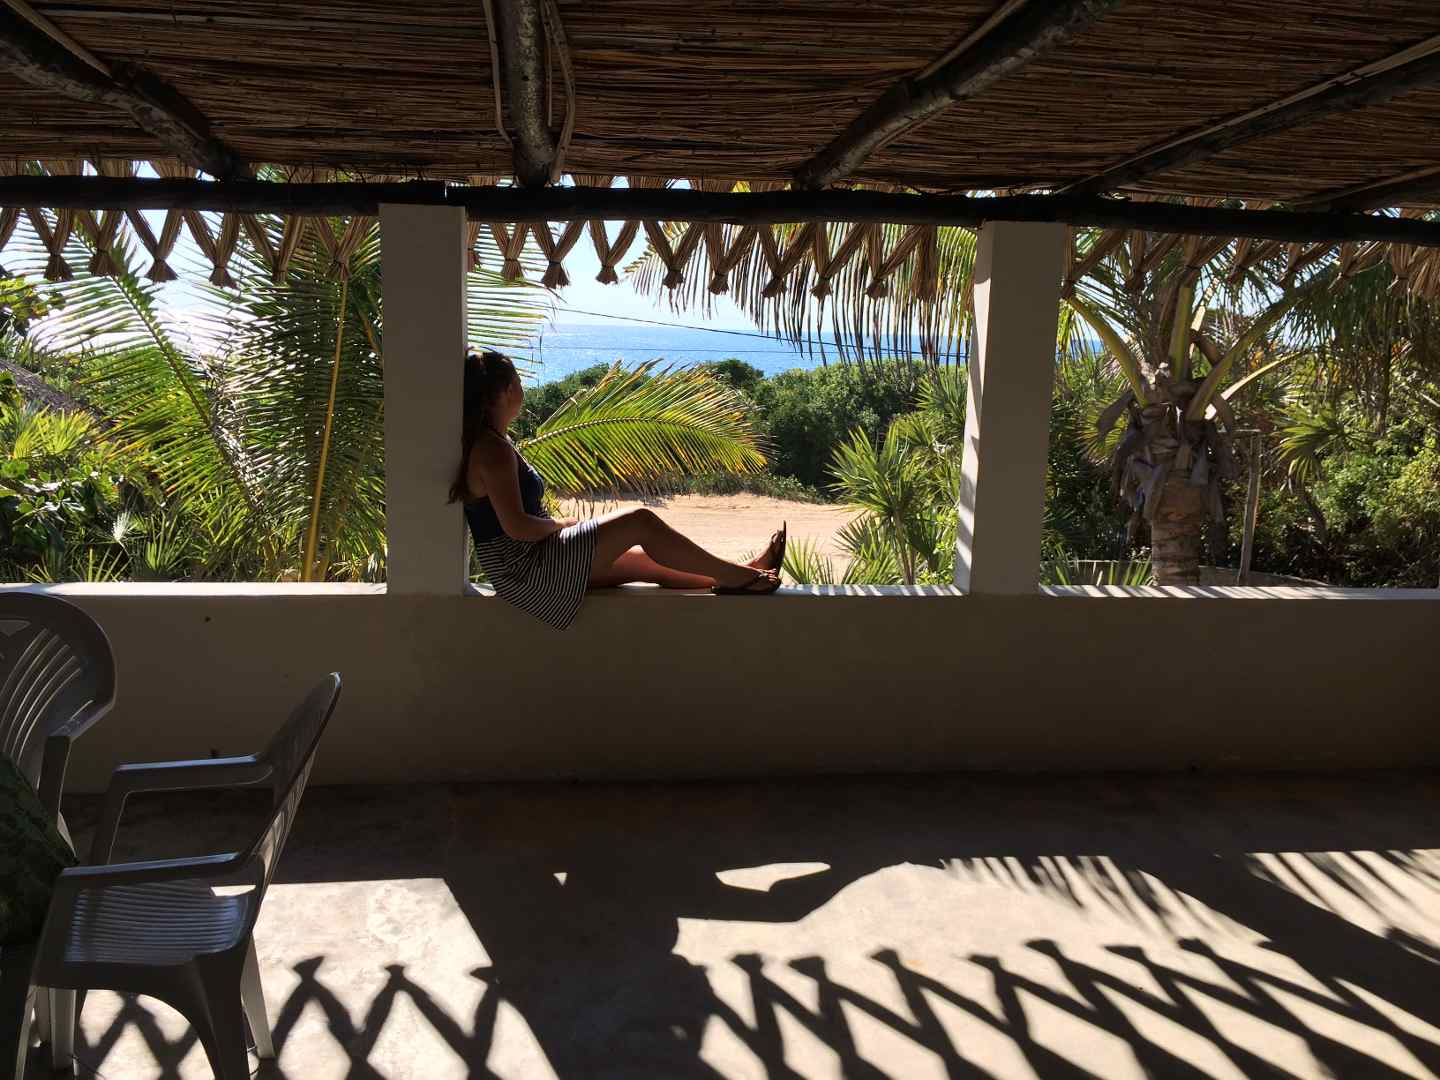 Christine picture of tofo beach accommodation tofinho tripadvisor - Tofo Beach Accommodation